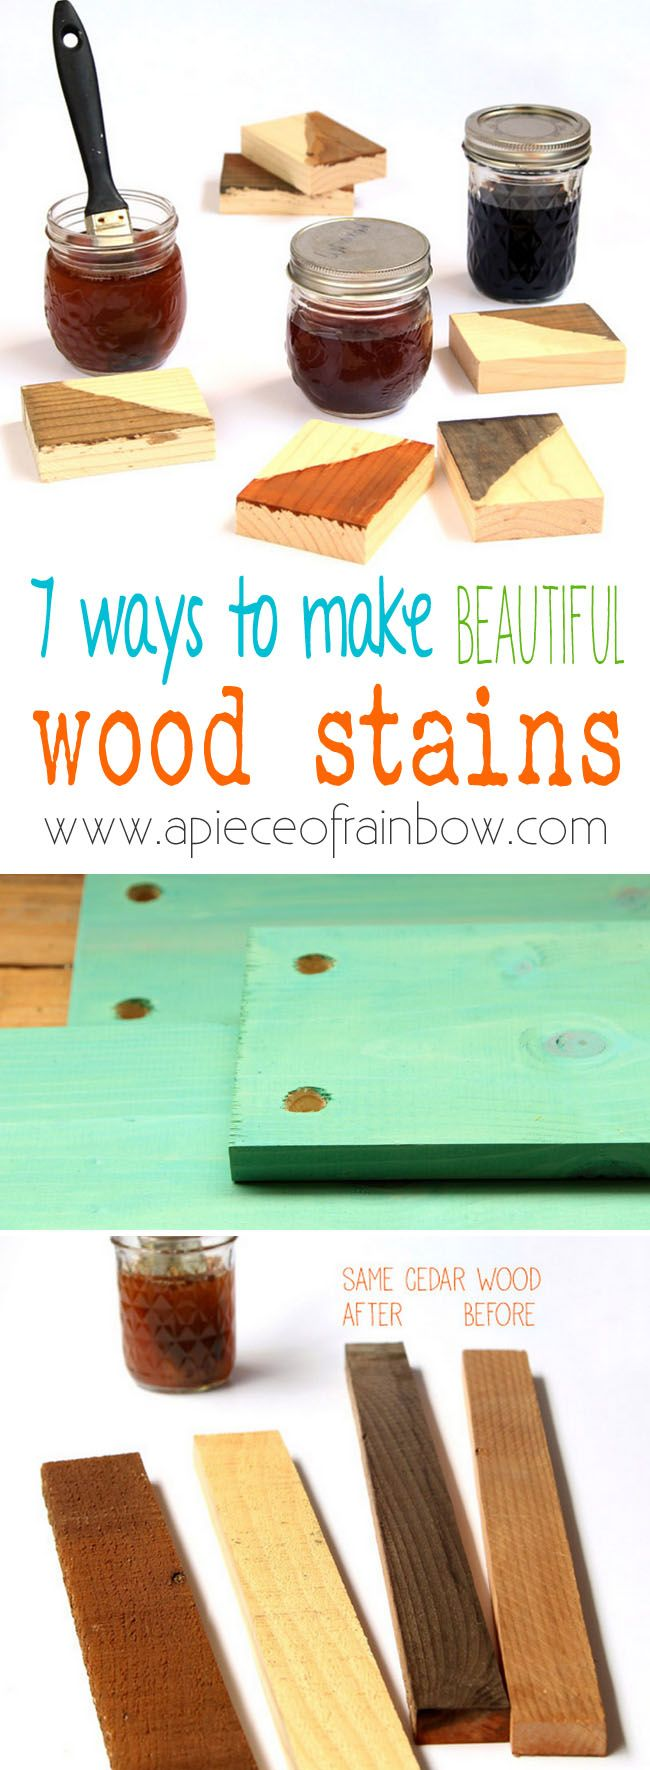 7 ways to make wood stain from natural household materials! These quick and easy wood stains are super effective, long lasting, low cost, and all natural!